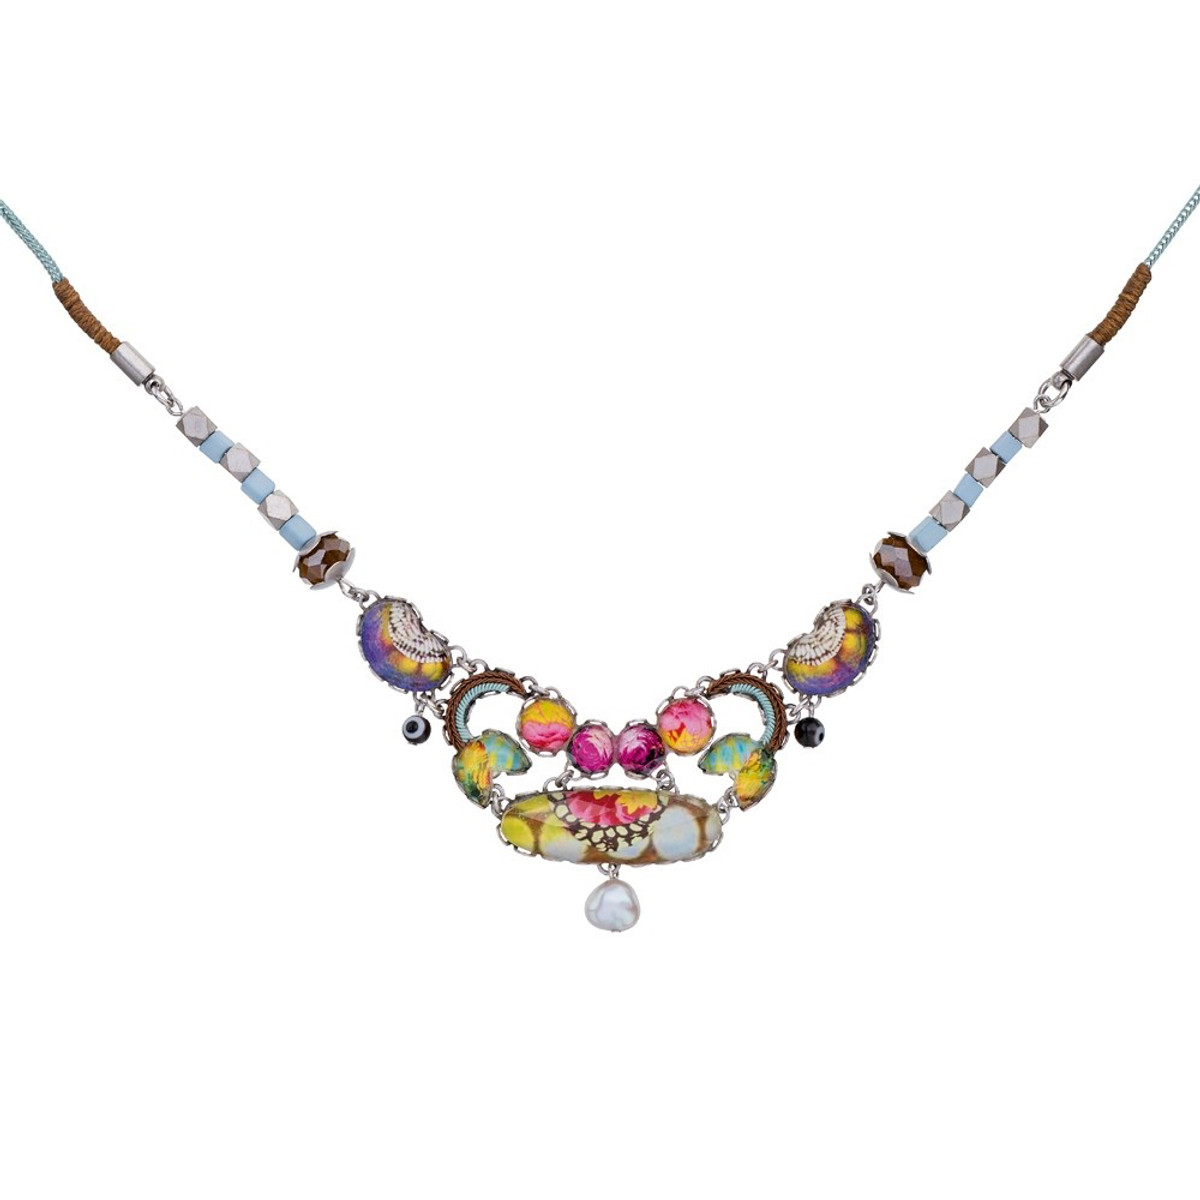 Ayala Bar Unforgettable Fire White Coconut Necklace - New Arrival